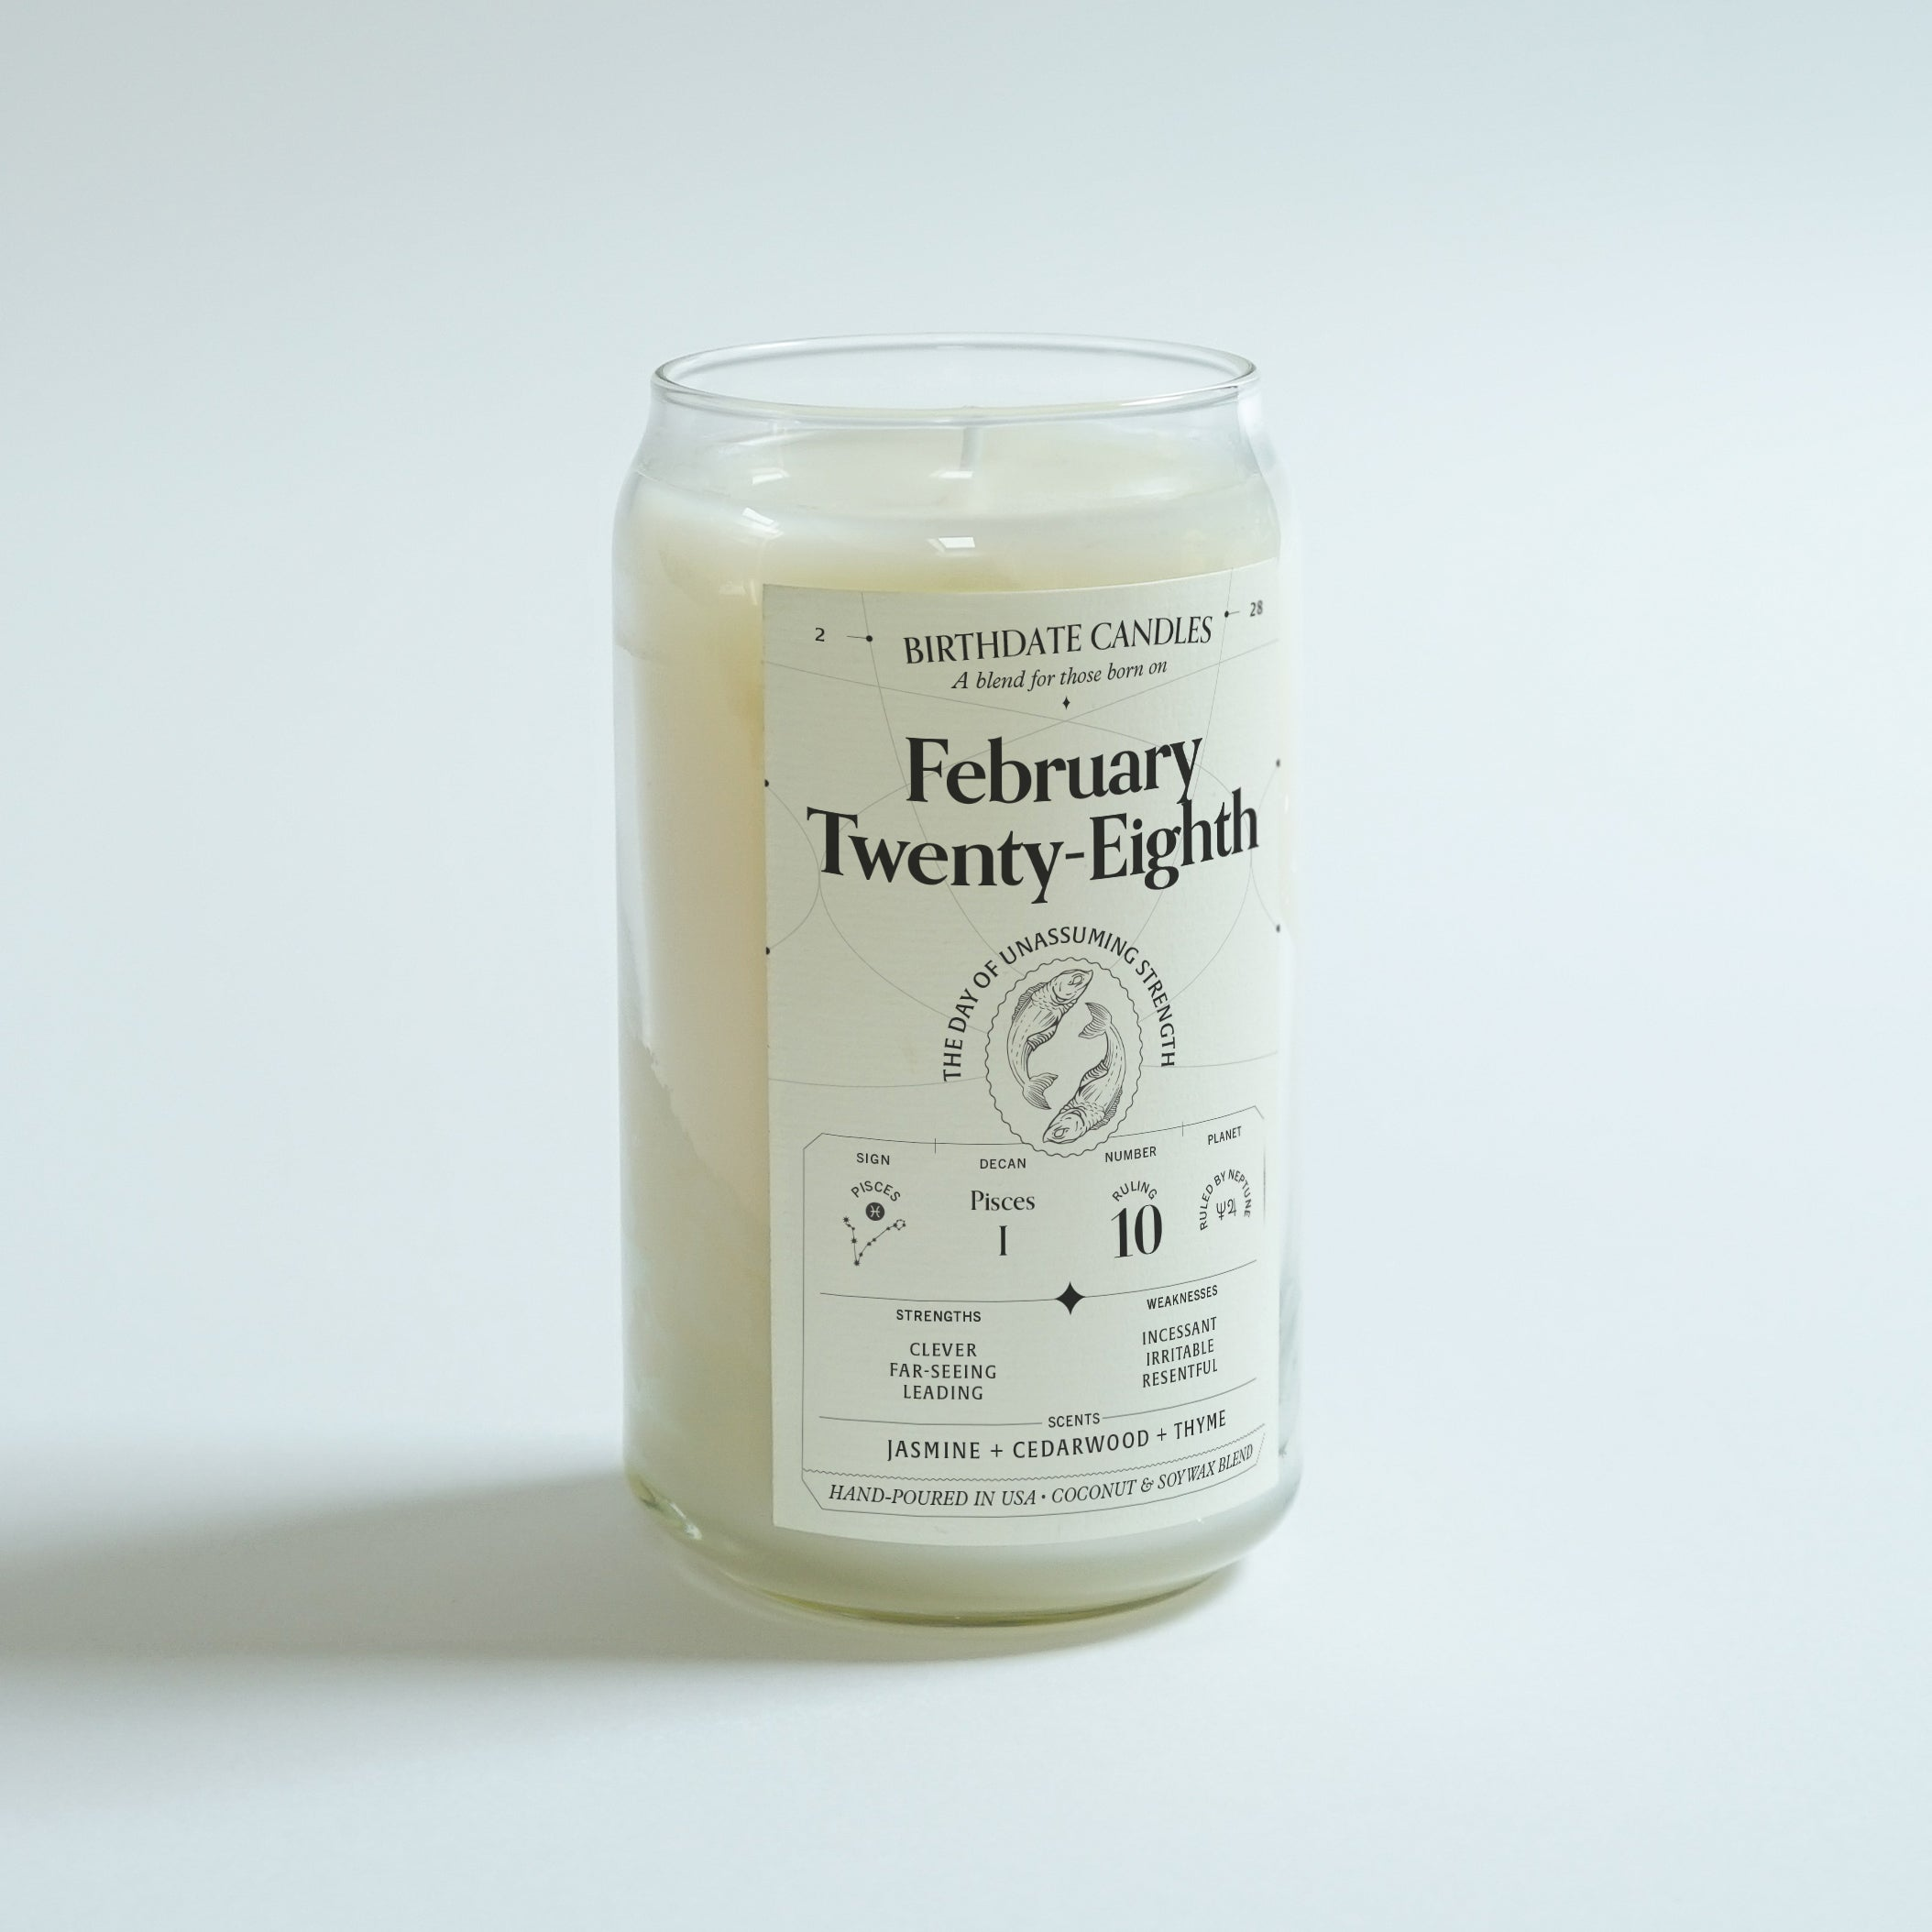 The February Twenty-Eighth Candle